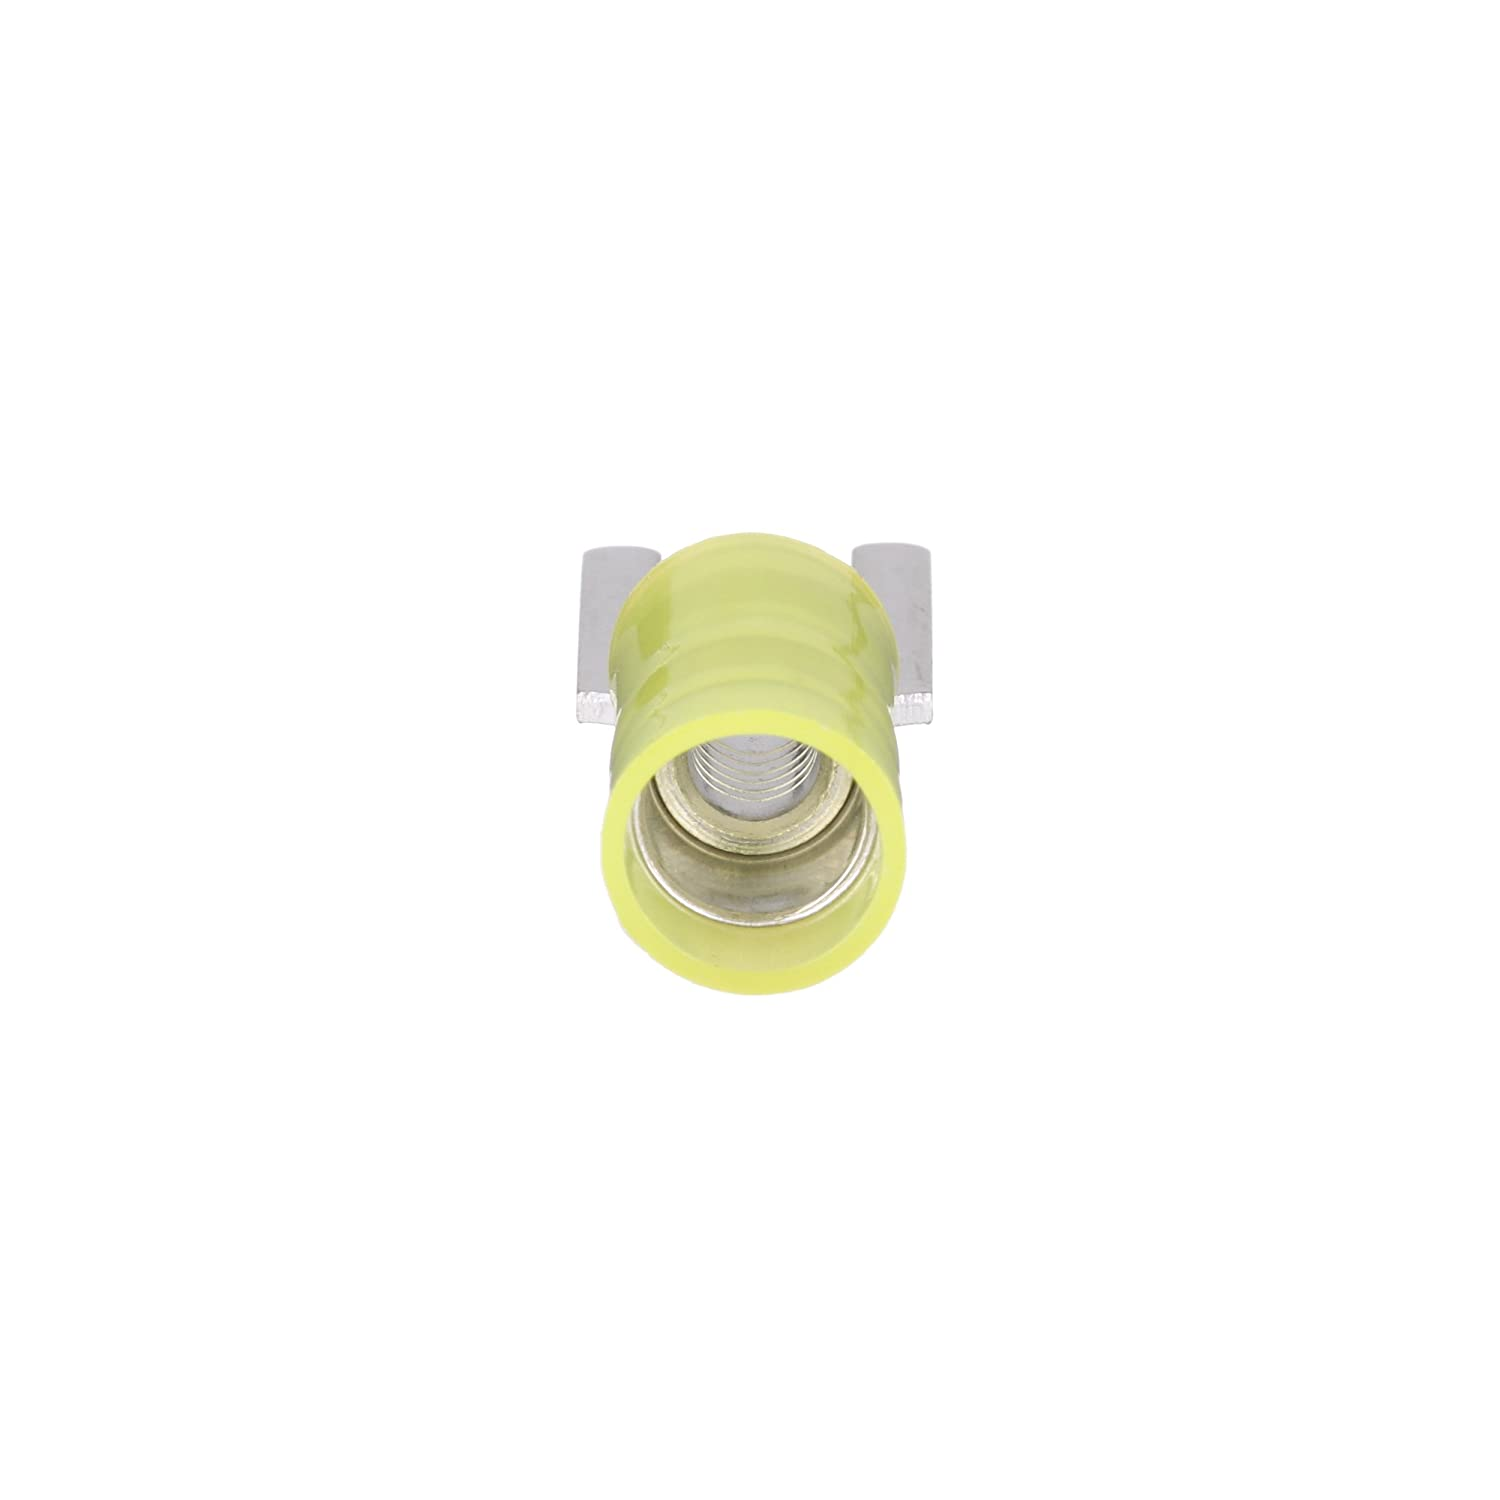 National products Panduit PN10-10LF-L Locking Fork Terminal Insulated - 12 Nylon Cheap super special price